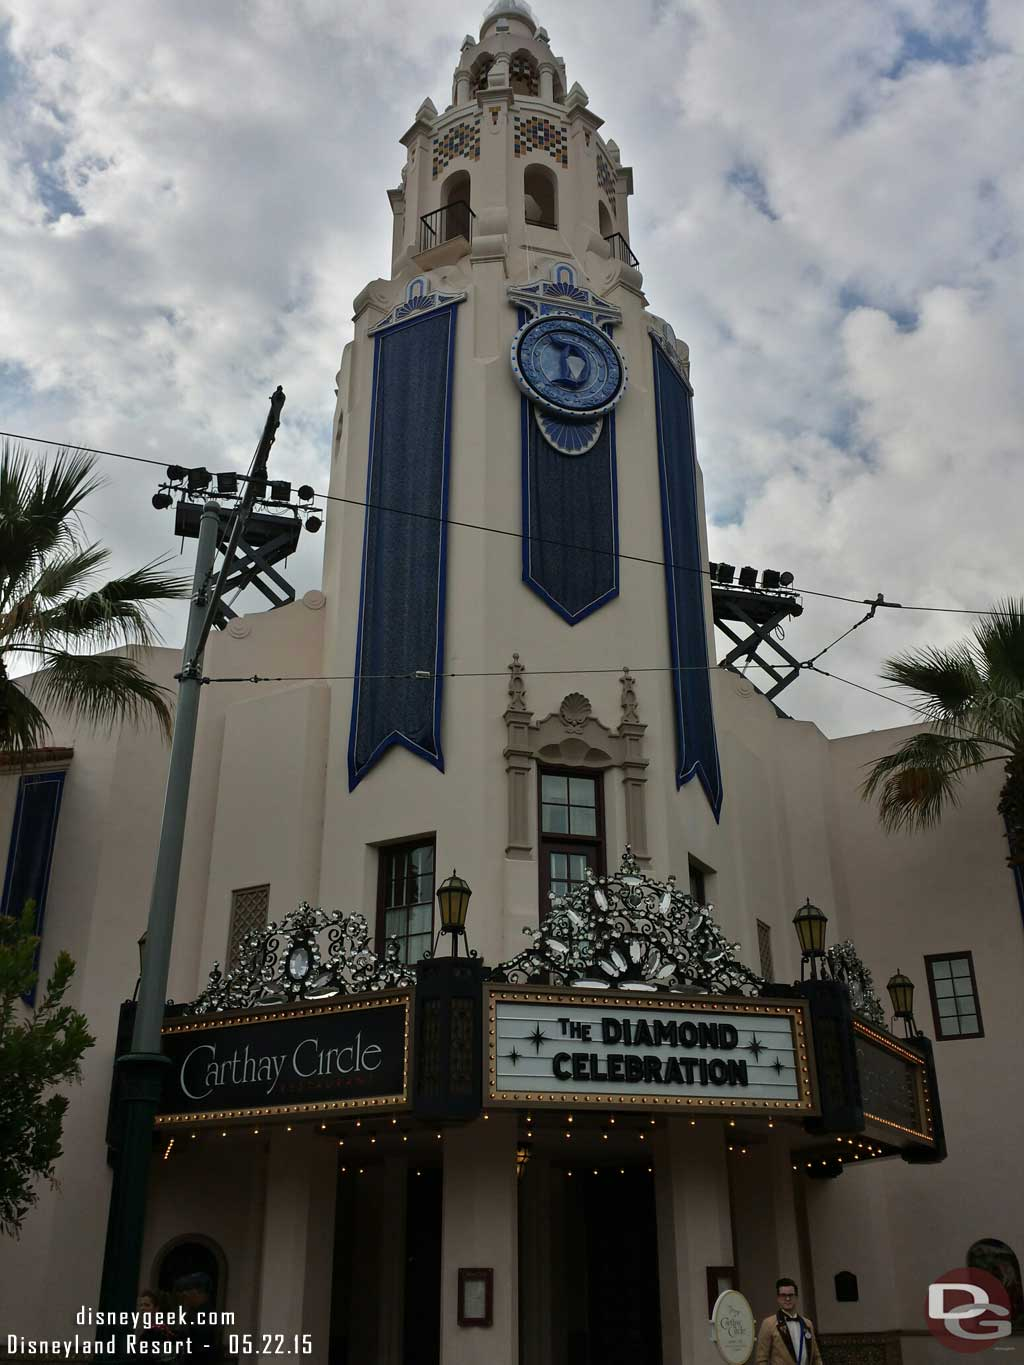 The Carthay Circle Restaurant #Disneyland60